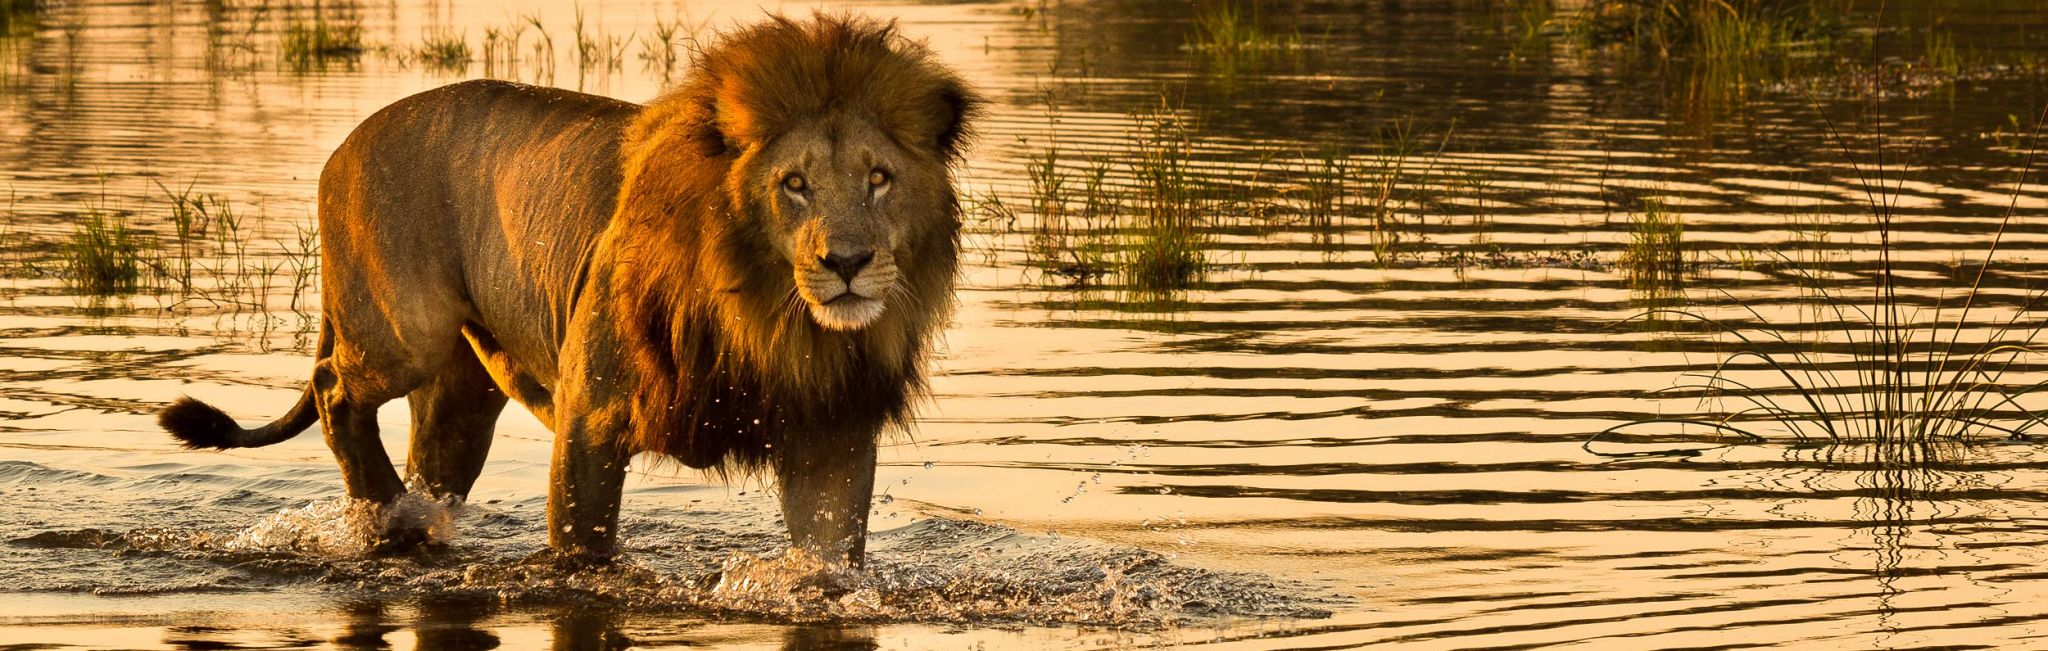 A lion wades through the waters of the Okavango Delta in Botswana.